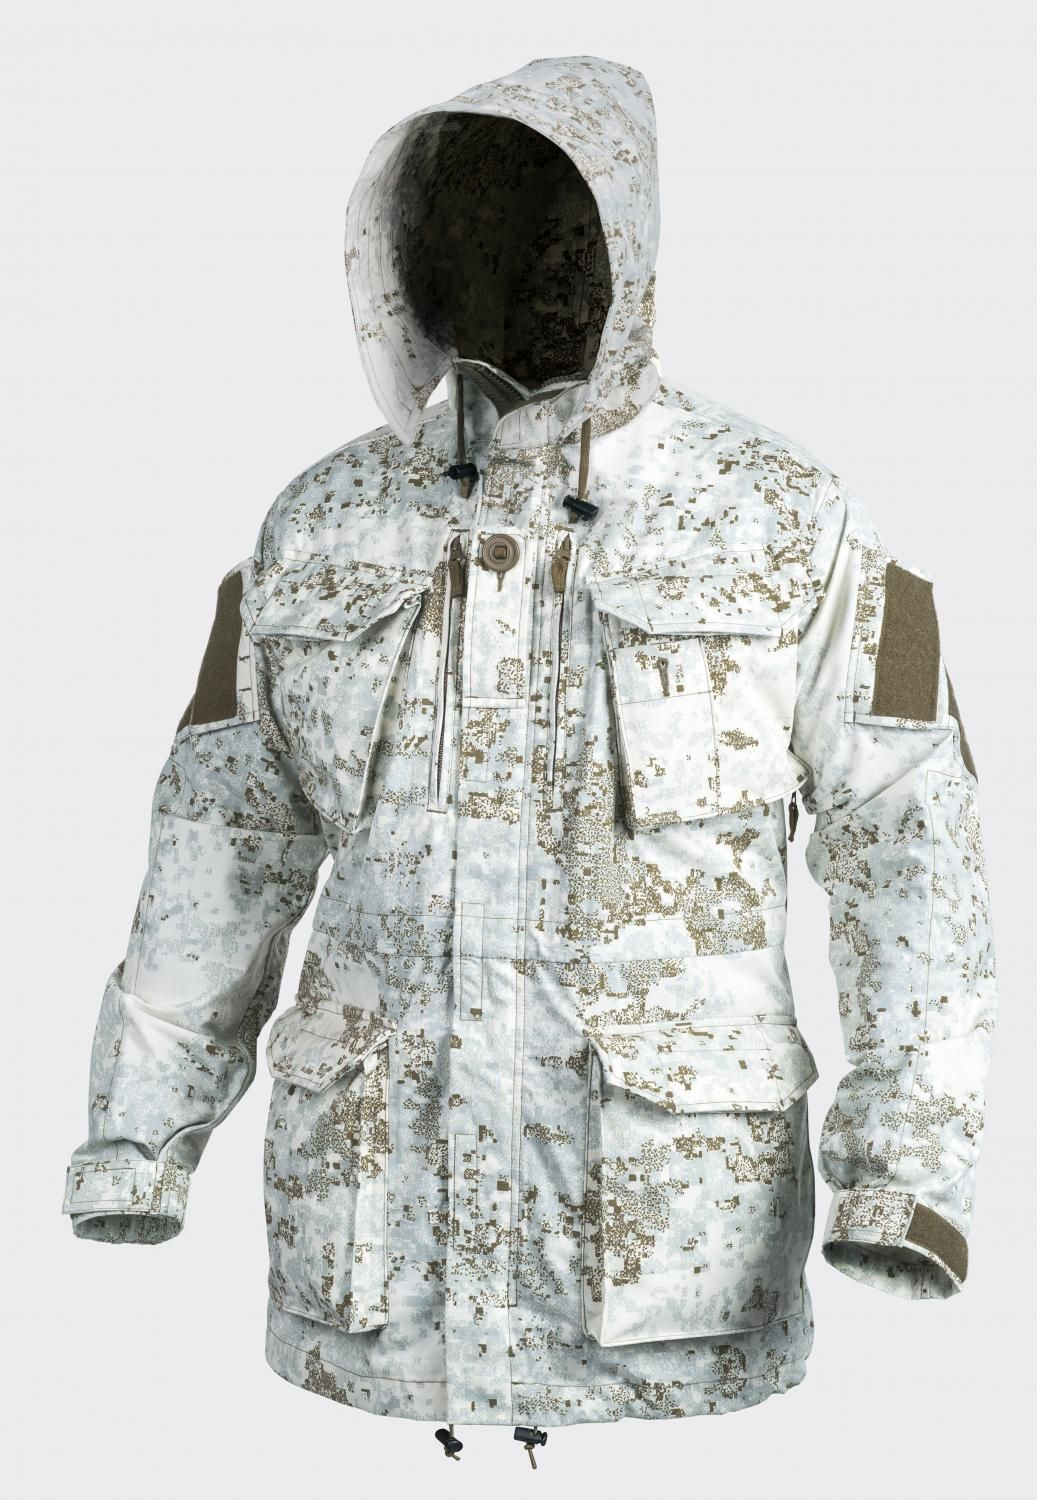 c0d357690872d The Personal Clothing System Smock (PCS) Parka/Smock from HELIKON-TEX is  now also available in Olive Green Pencott Camouflage Greenzone & Snowdrift.